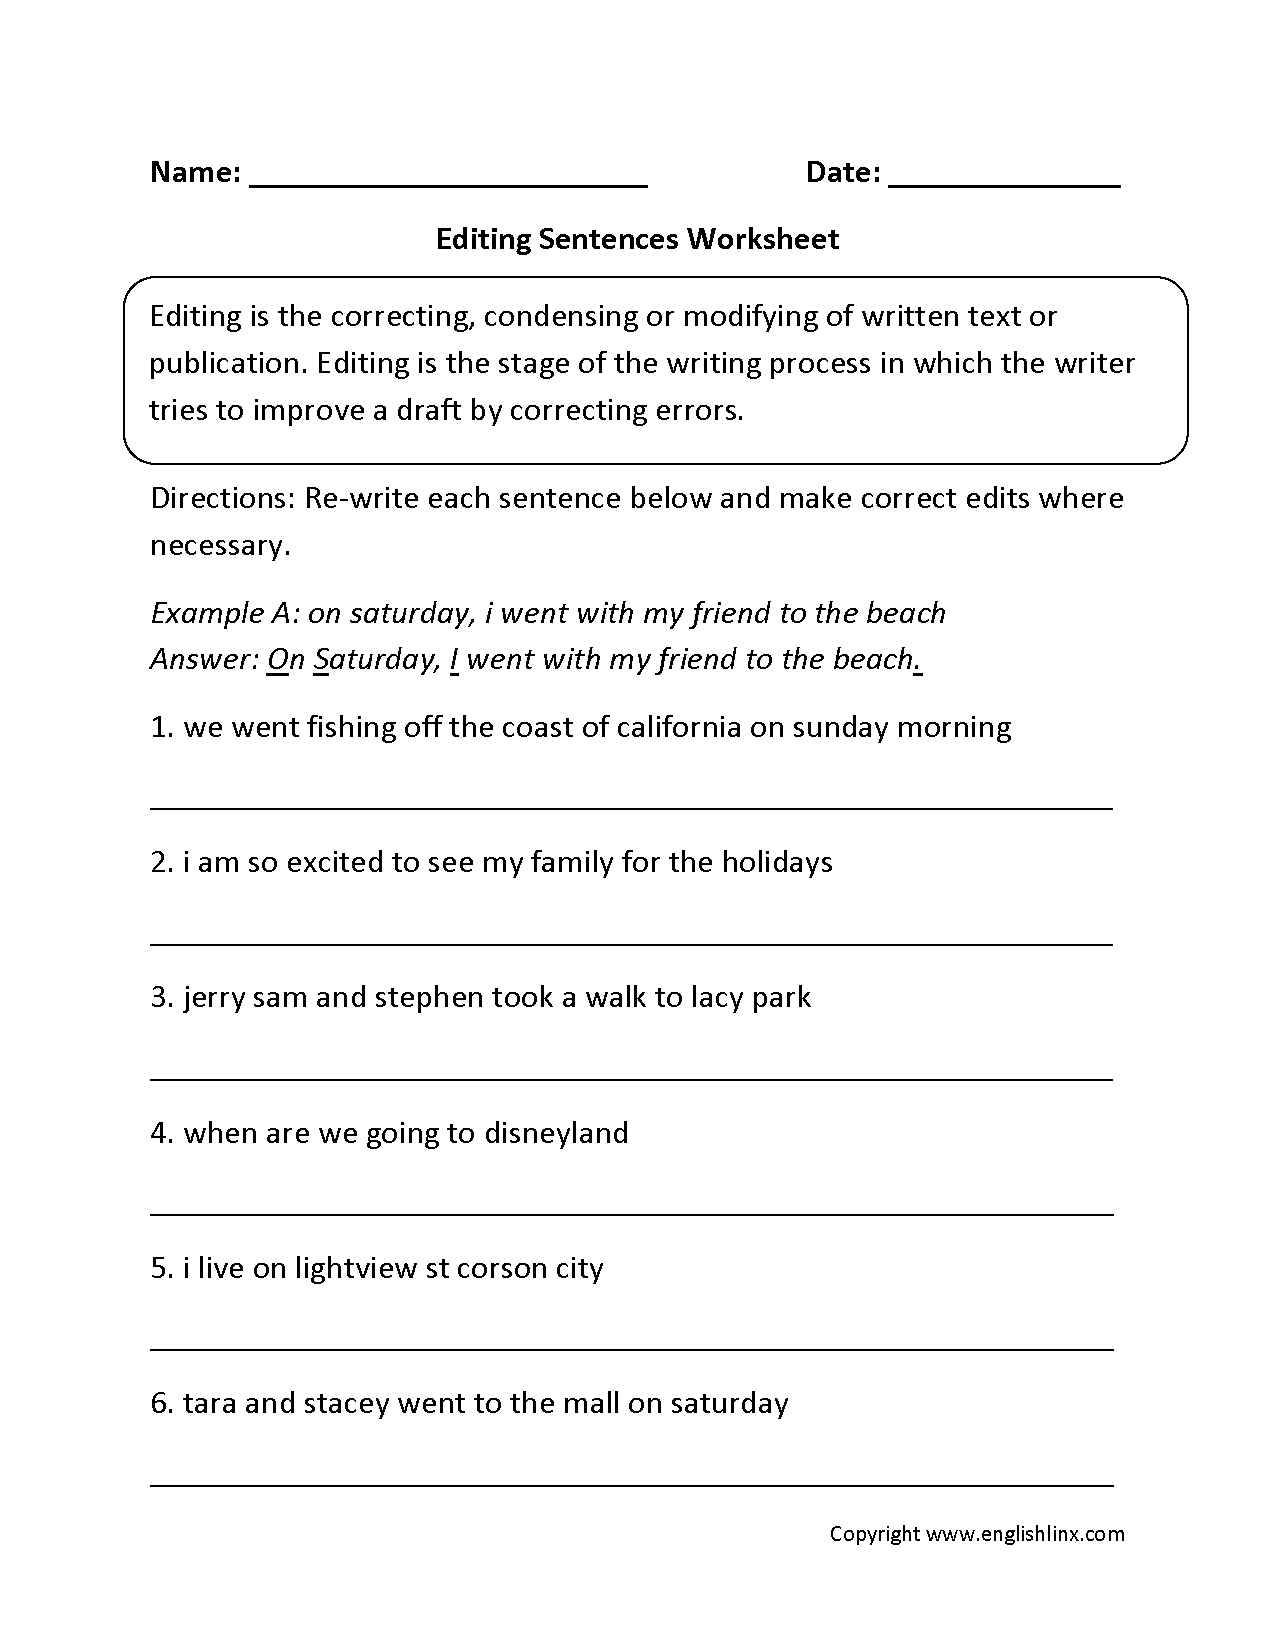 Writing Worksheets | Editing Worksheets - Free Printable Sentence | Free Printable Sentence Correction Worksheets